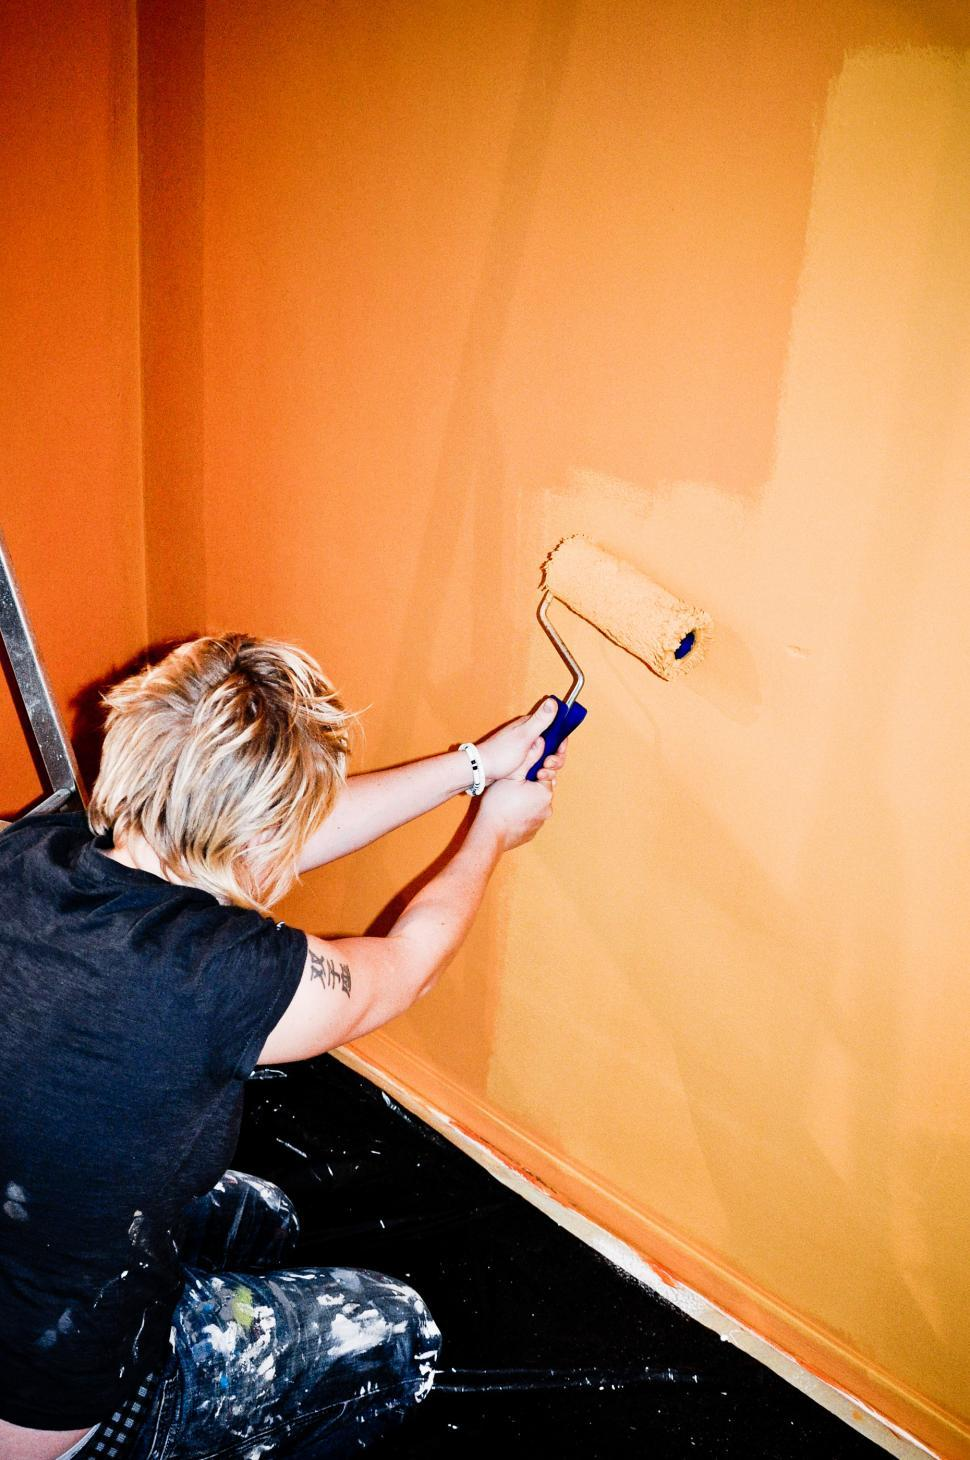 Download Free Stock HD Photo of Girl painting wall Online